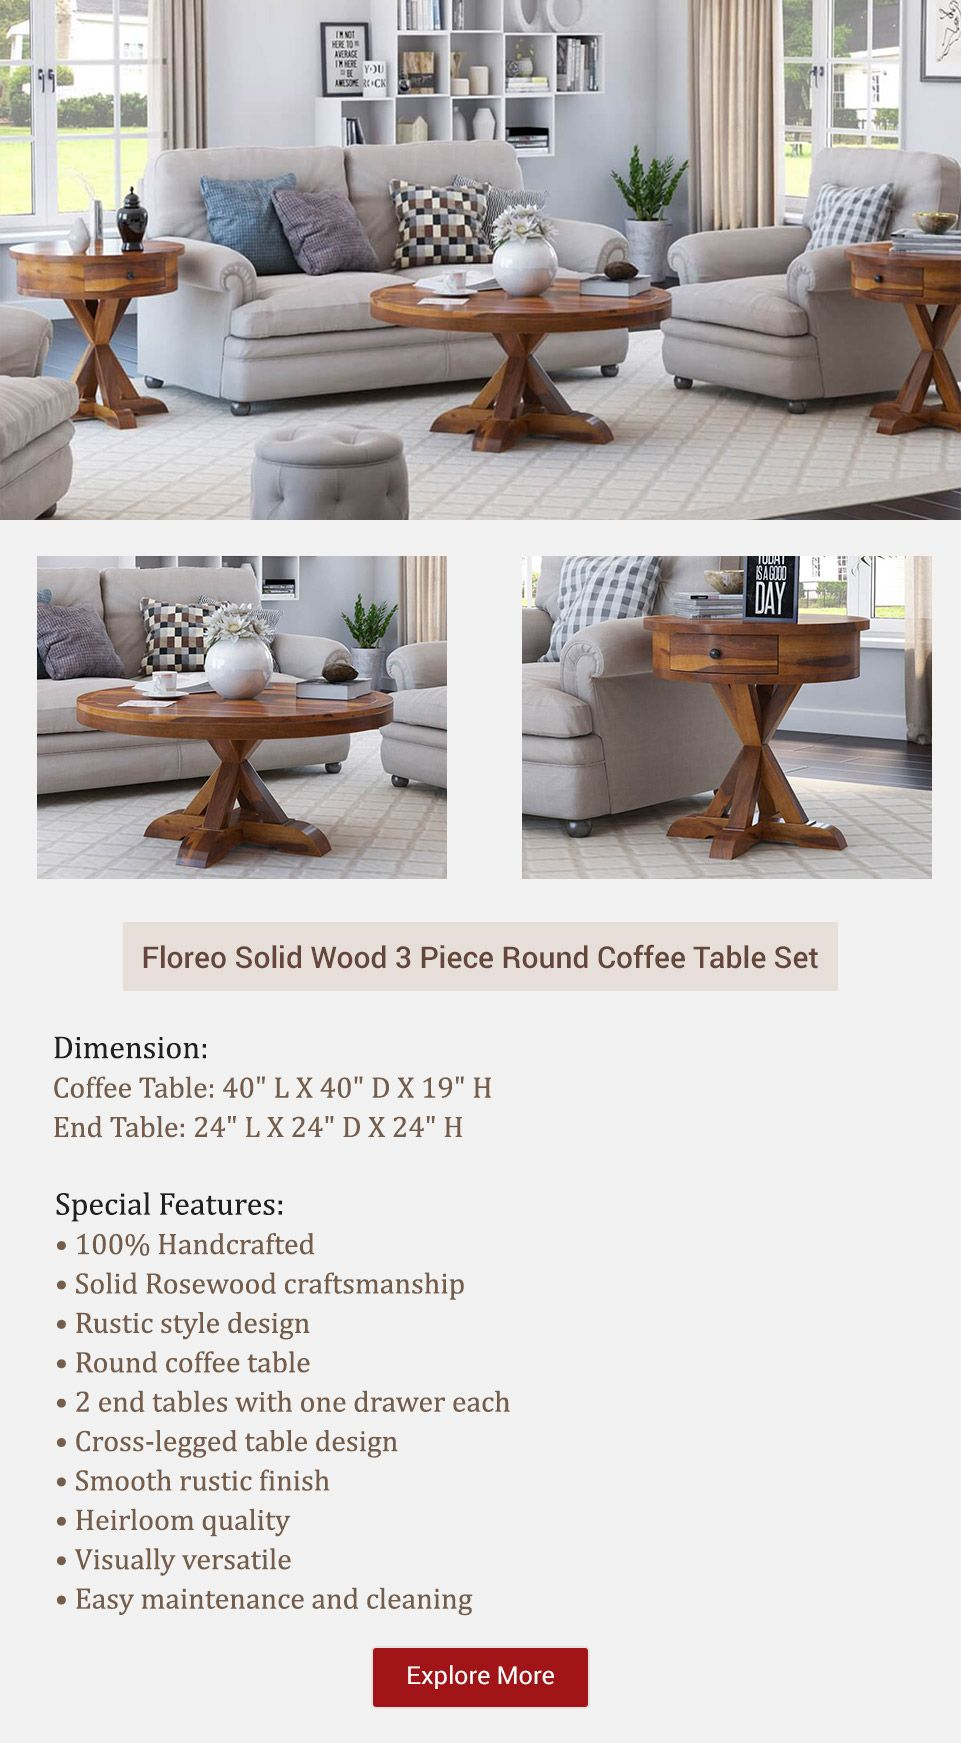 Floreo Solid Wood 3 Piece Round Coffee Table Set Coffee Table Setting Round Coffee Table Sets Round Coffee Table [ 1743 x 961 Pixel ]